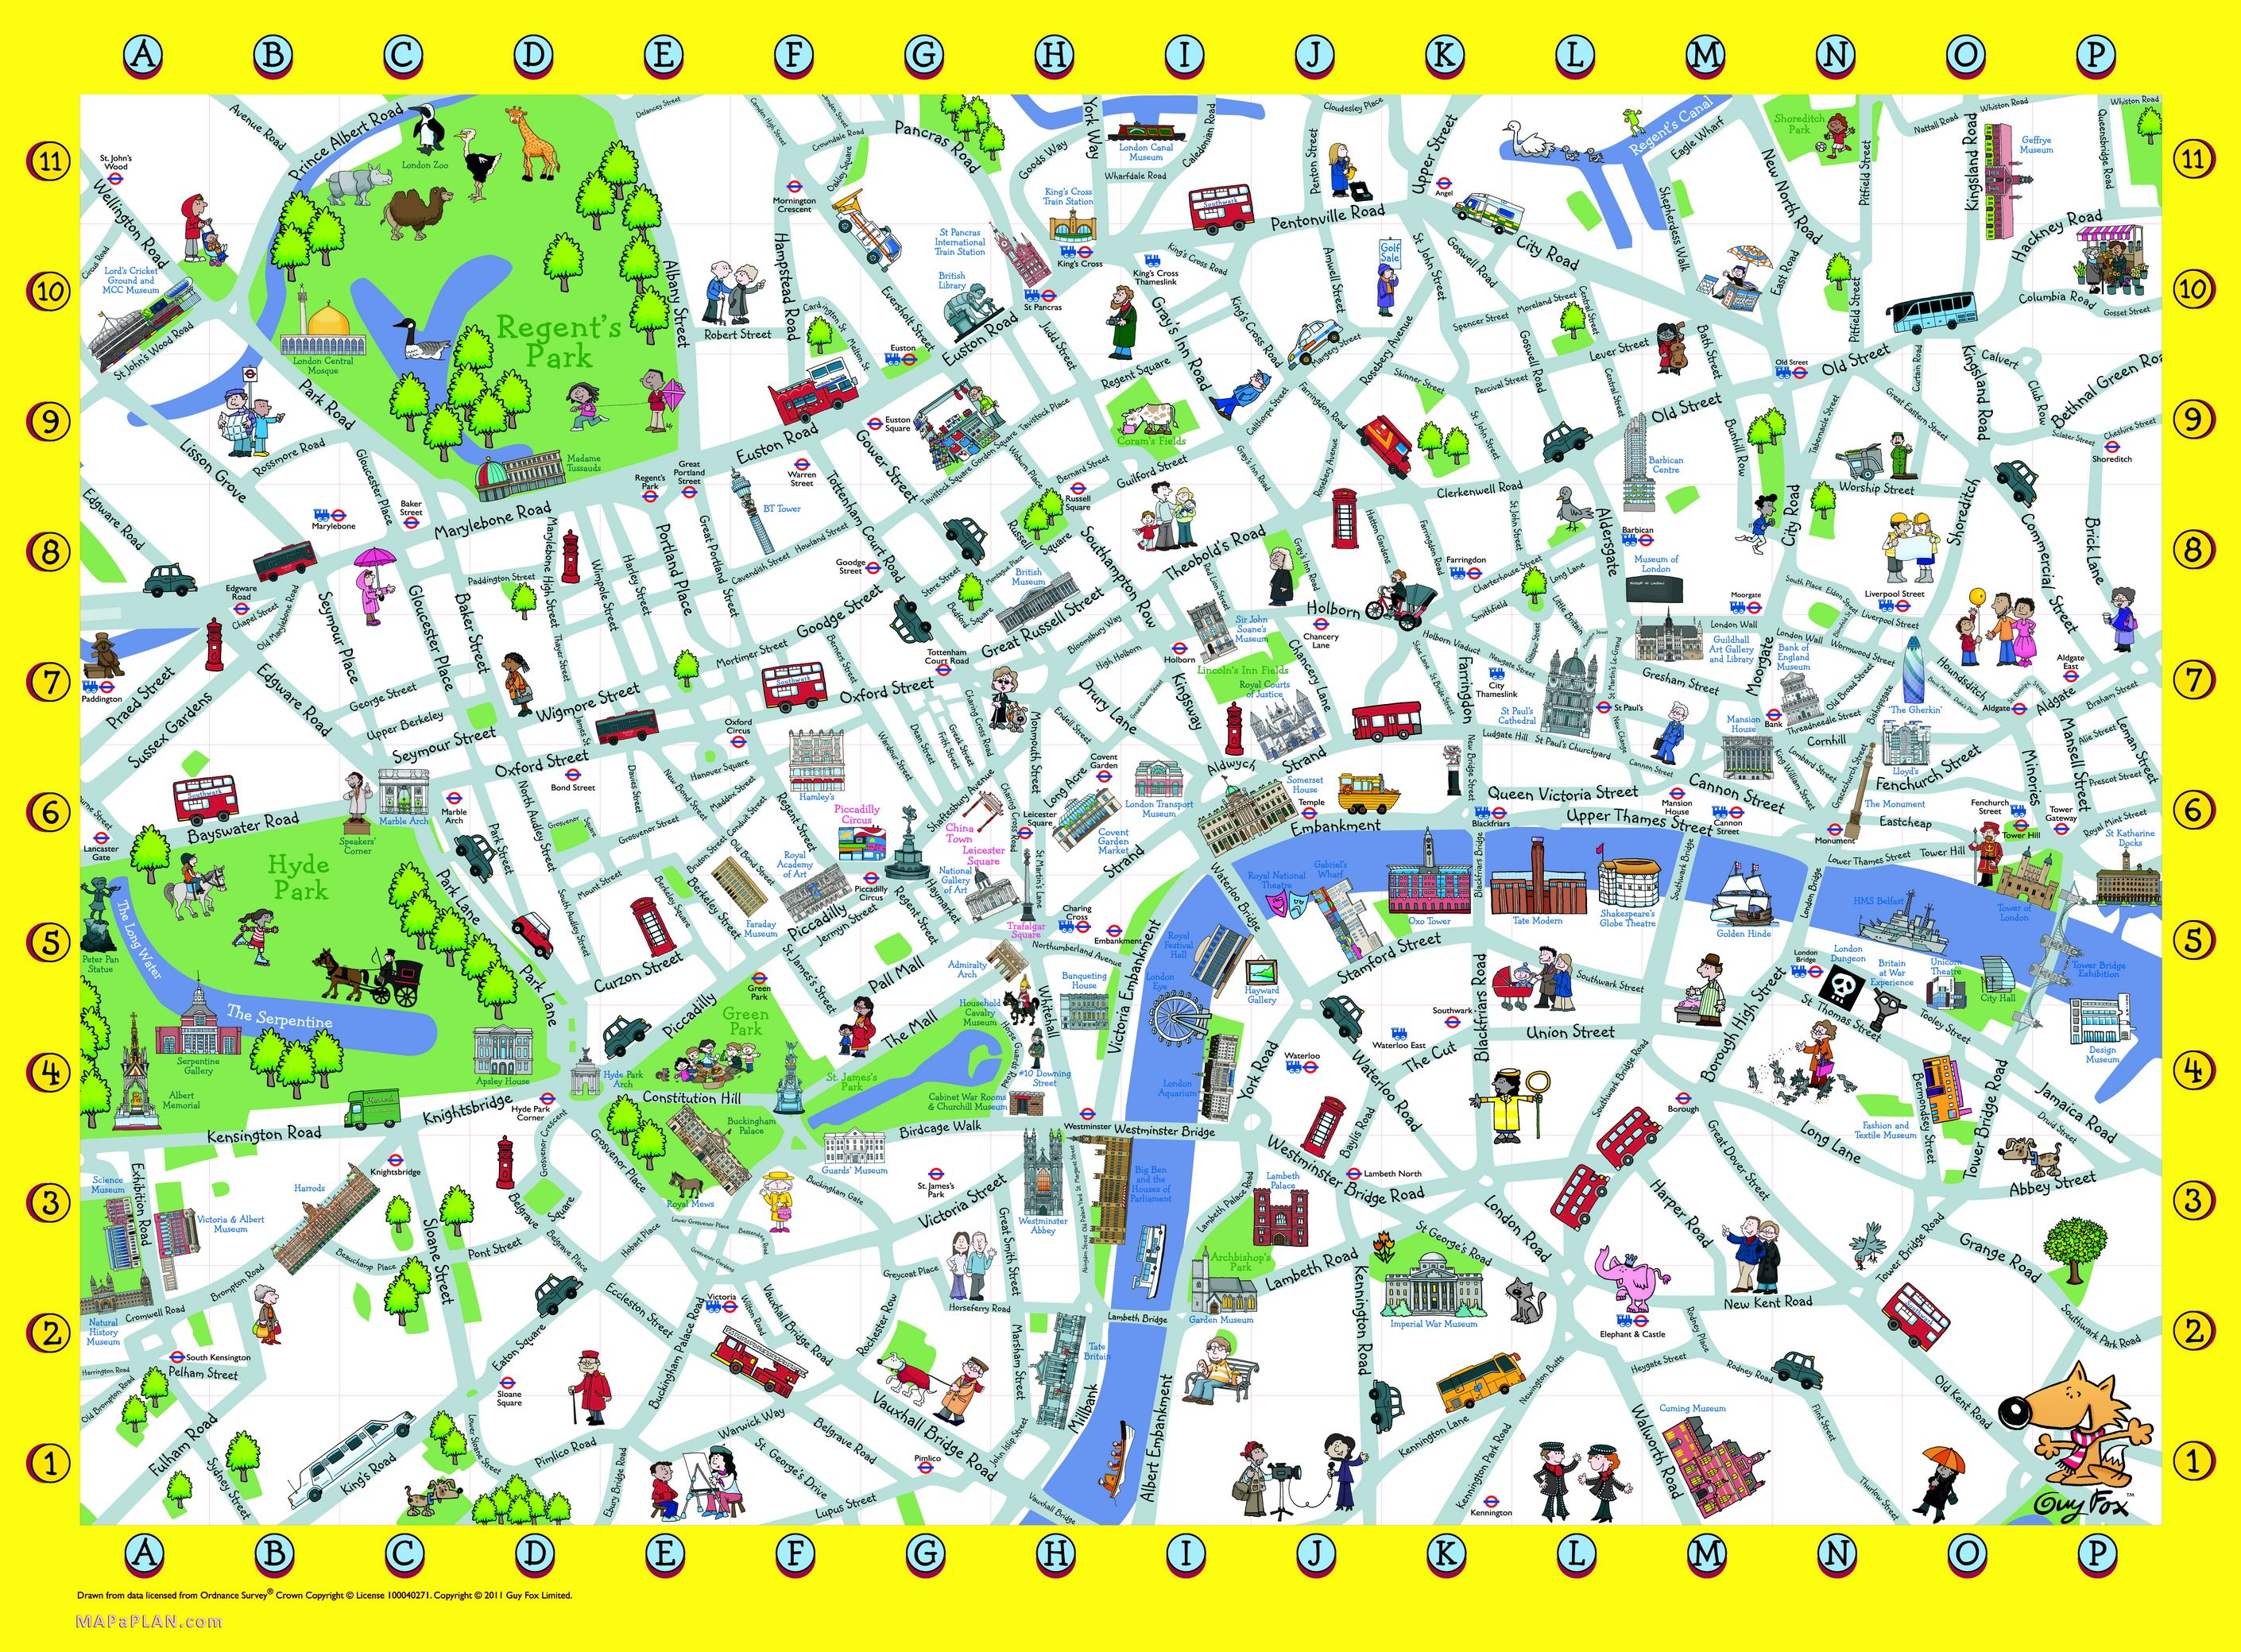 London Detailed Landmark Map | London Maps - Top Tourist Attractions - Printable Tourist Map Of London Attractions